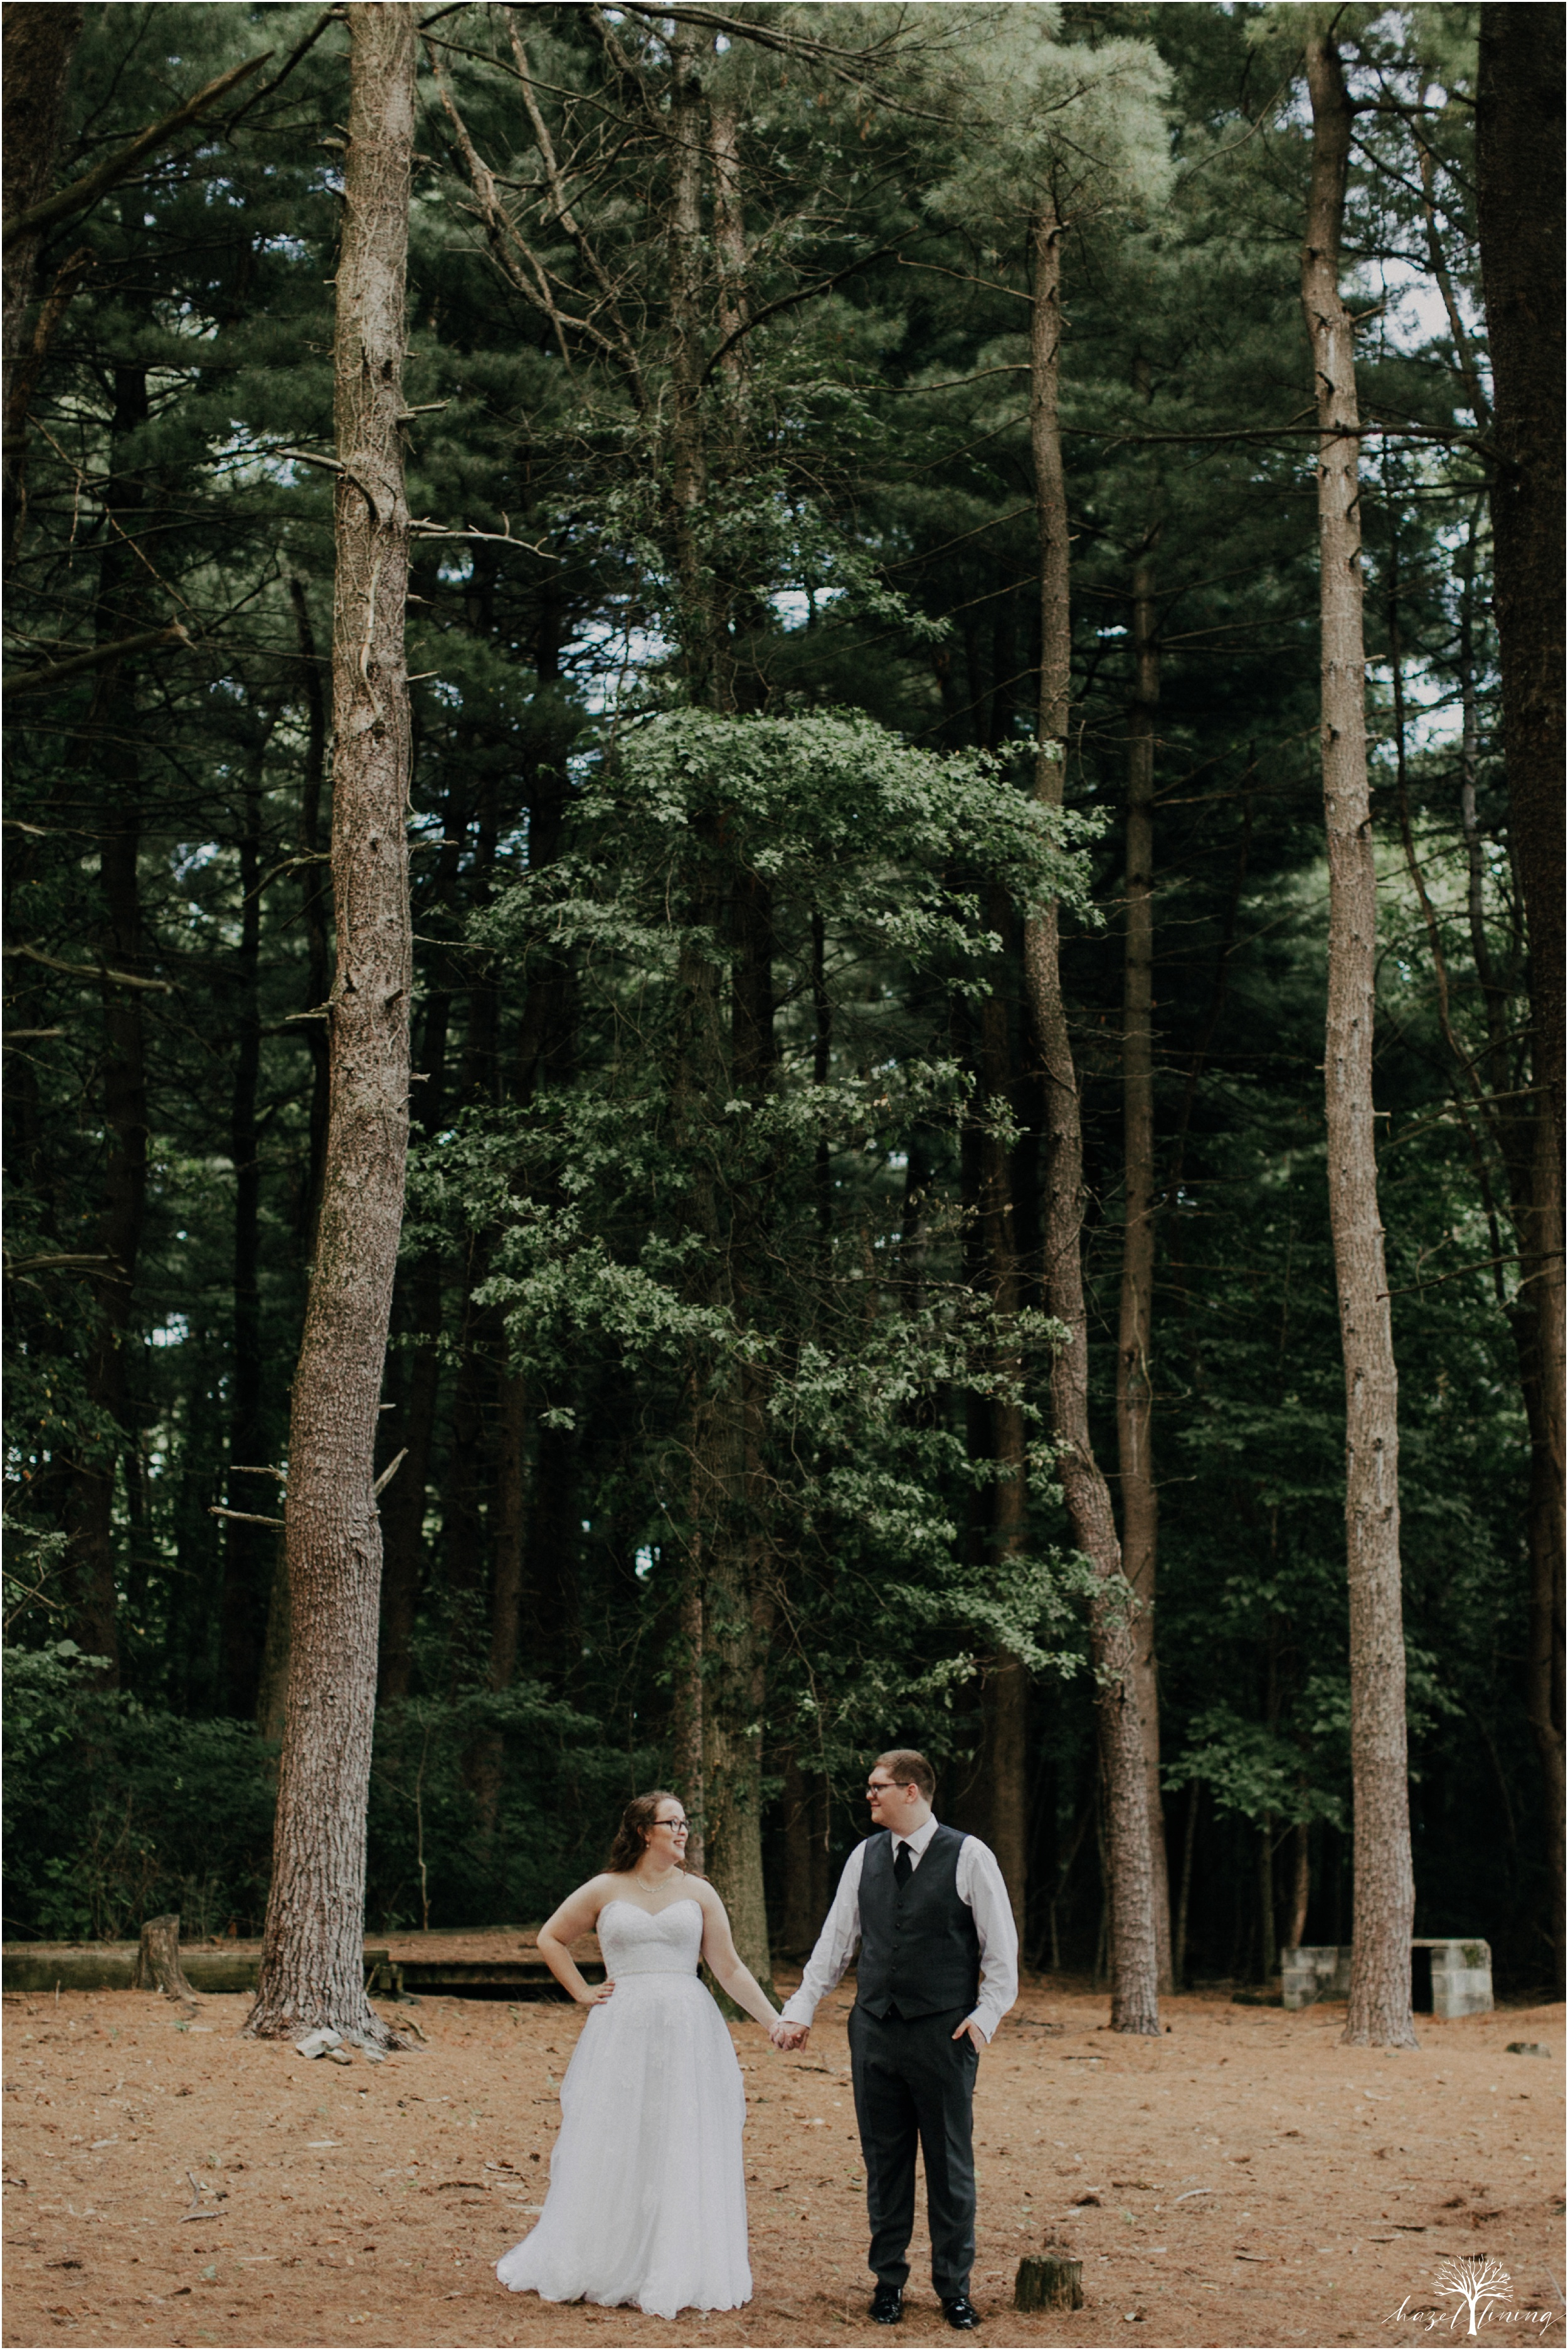 laura-zach-mccaskill-harmony-hall-lebanon-valley-college-summer-wedding-hazel-lining-photography-destination-elopement-wedding-engagement-photography_0138.jpg